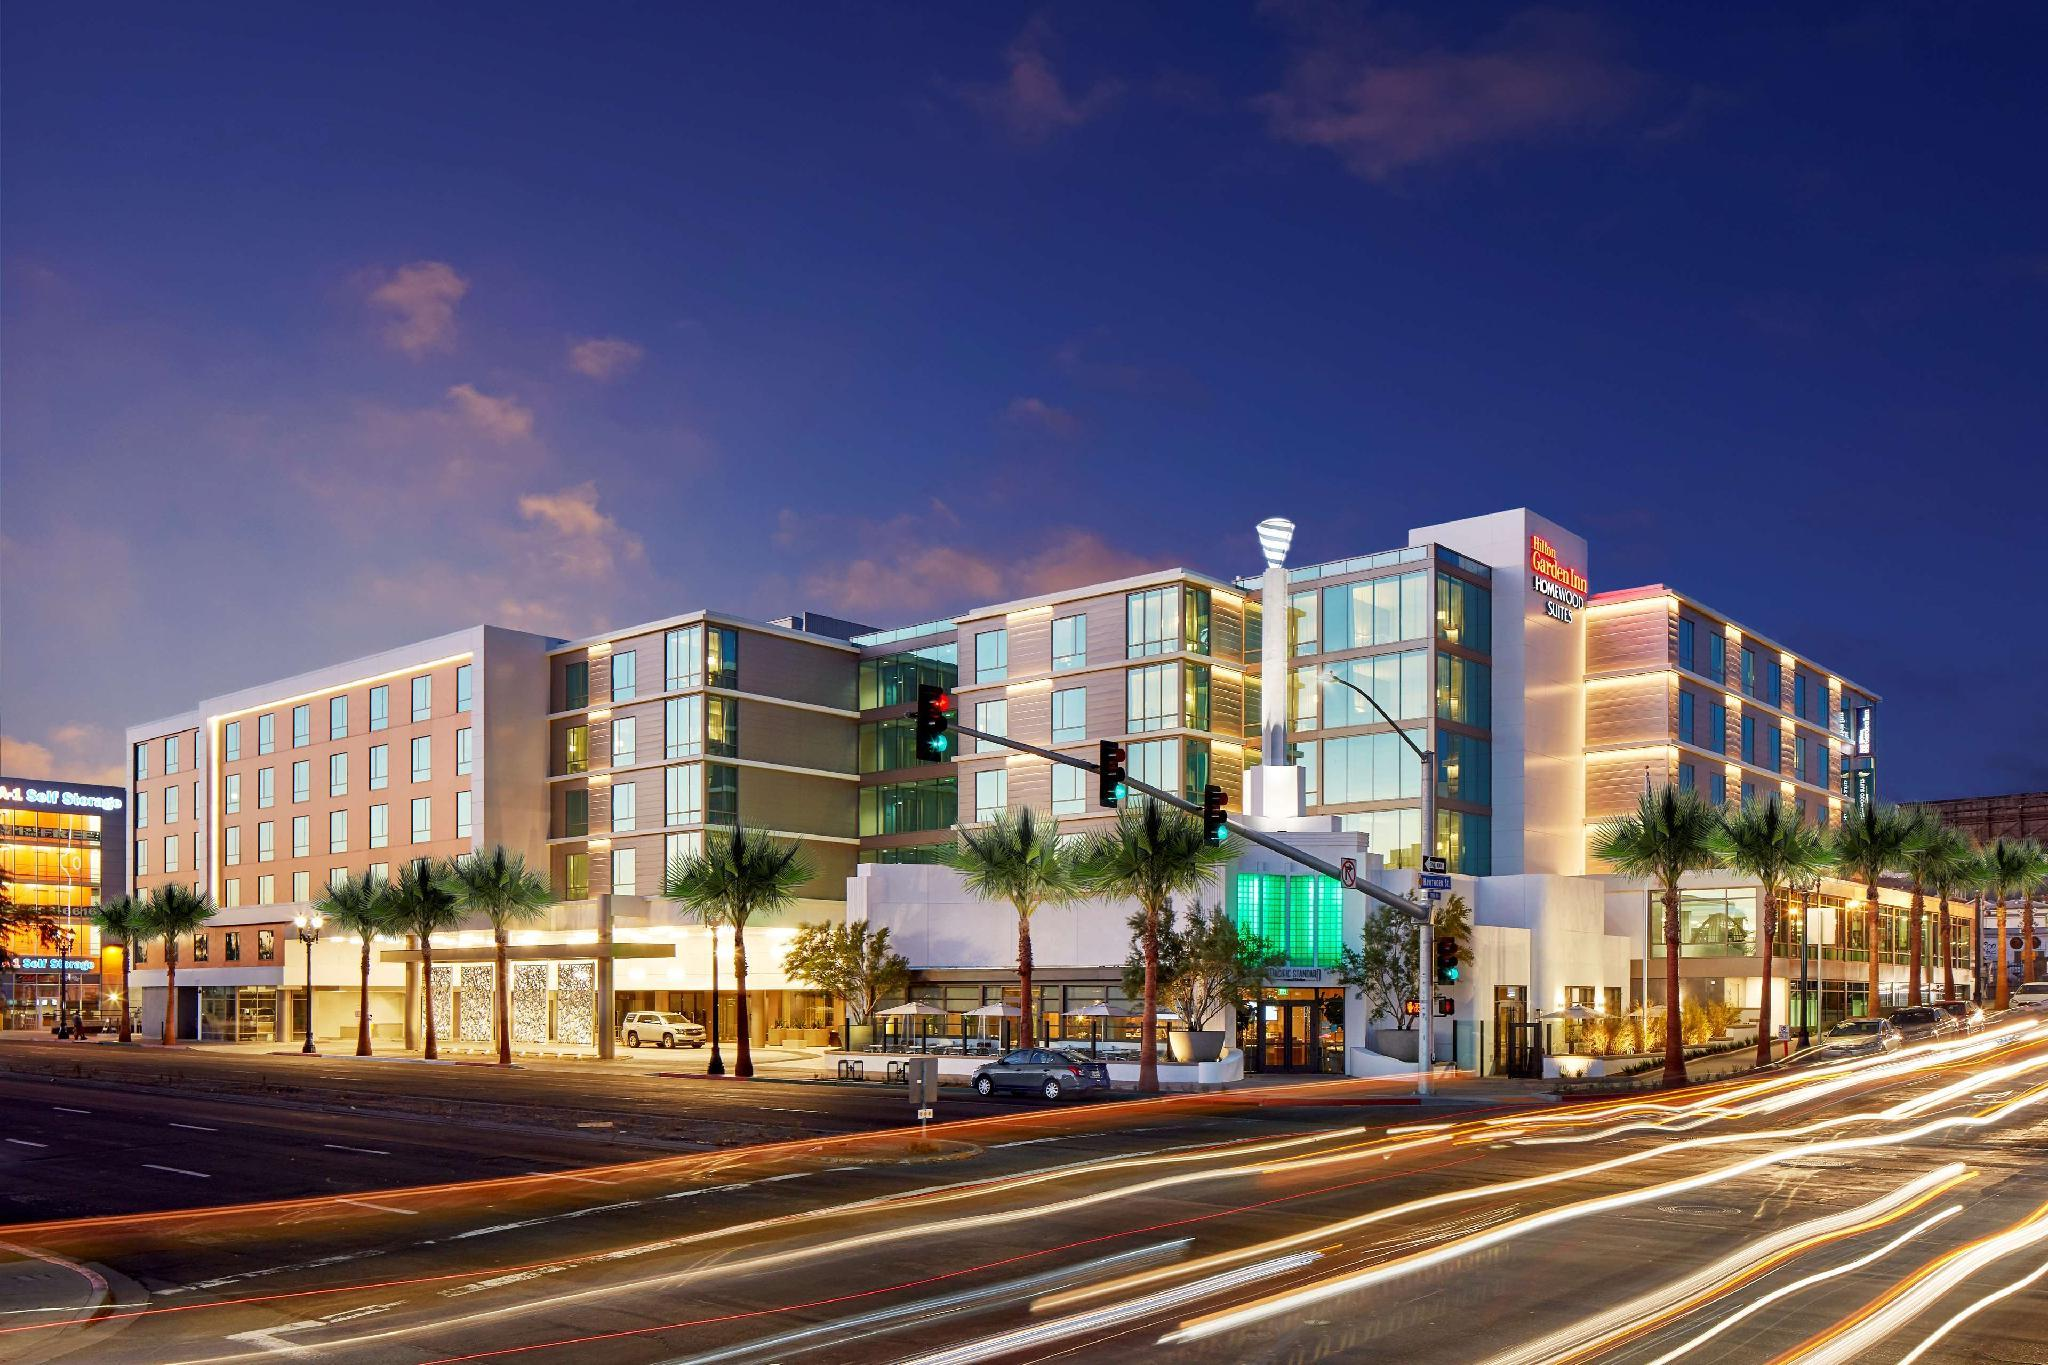 Homewood Suites By Hilton San Diego Downtown Bayside